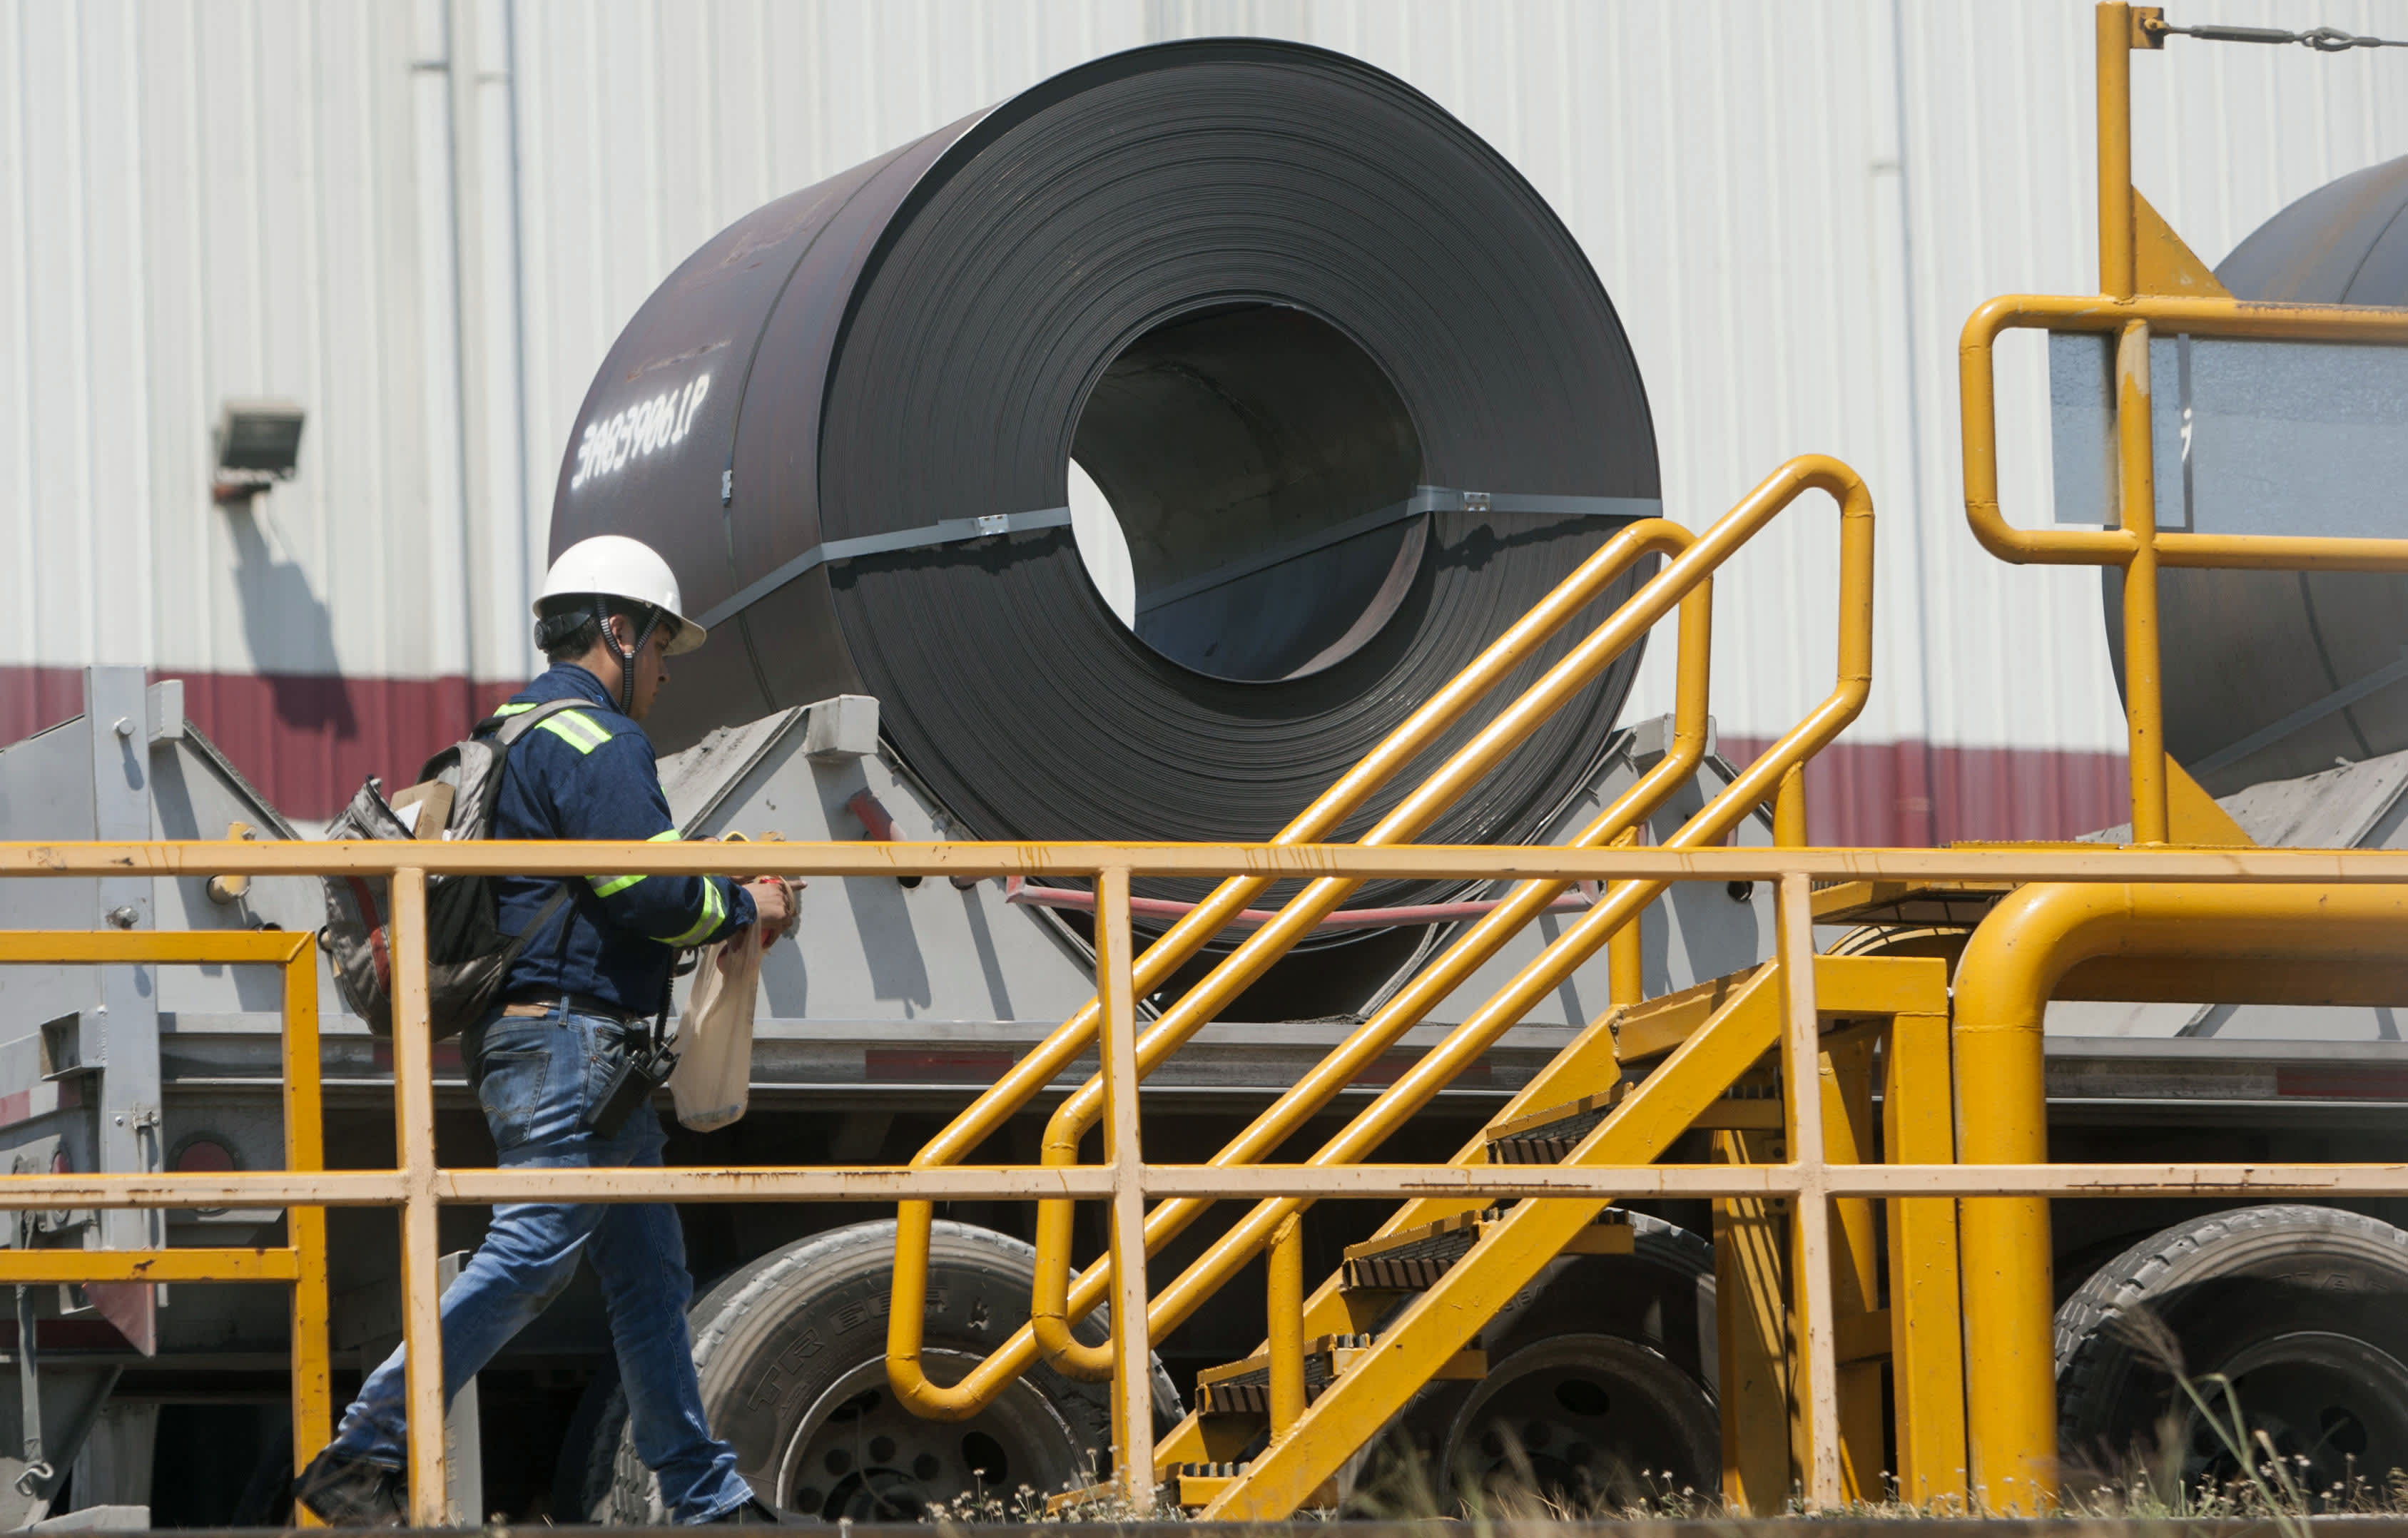 A worker walks past a steel coil loaded on a truck, at a plant in Monterrey, Mexico on August 27, 2018.